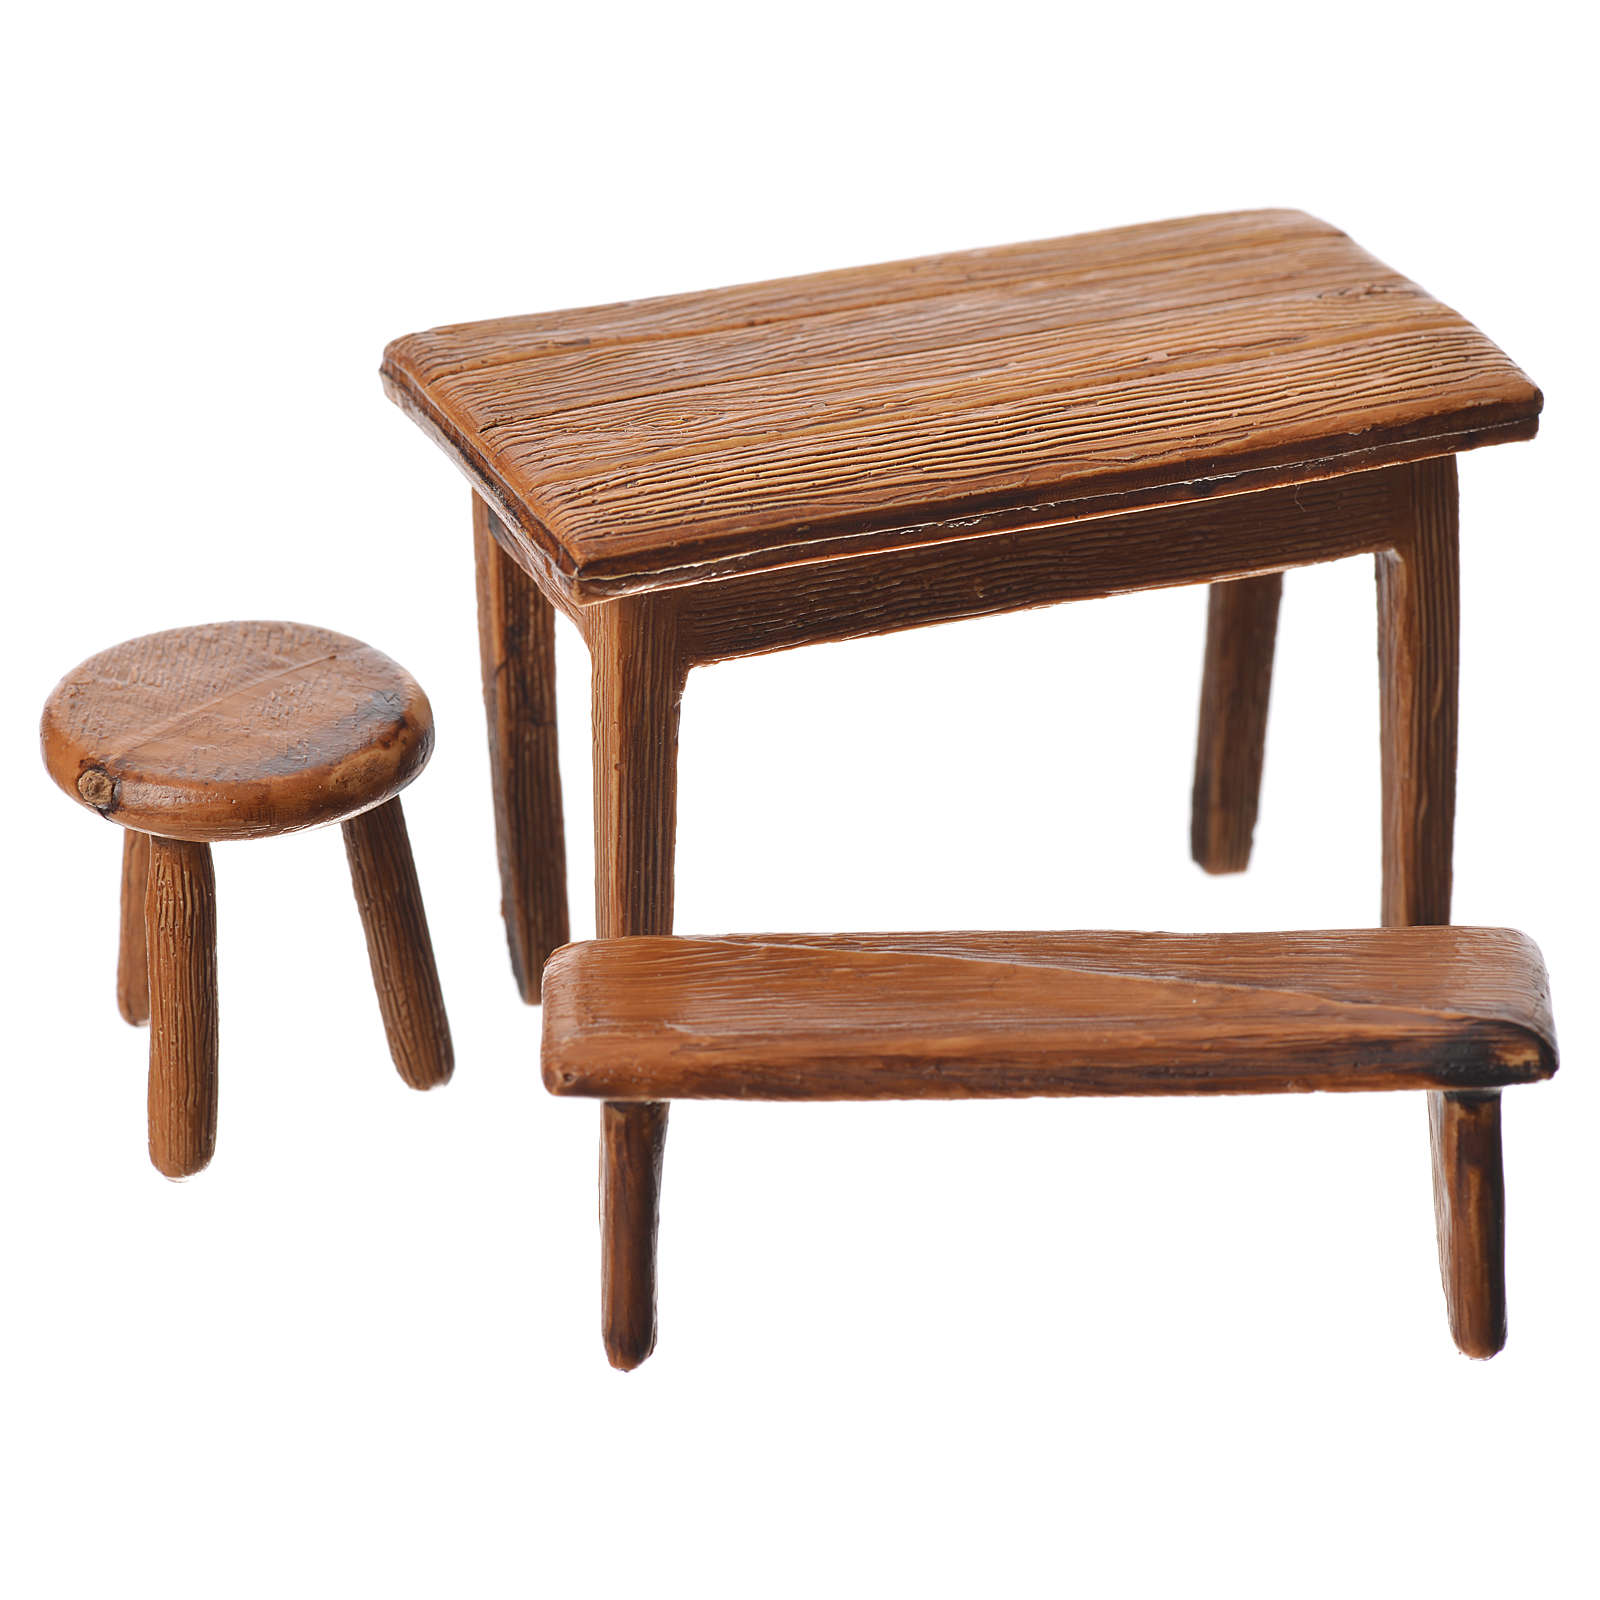 Table, bench, stool for Moranduzzo Nativity, 10cm 4